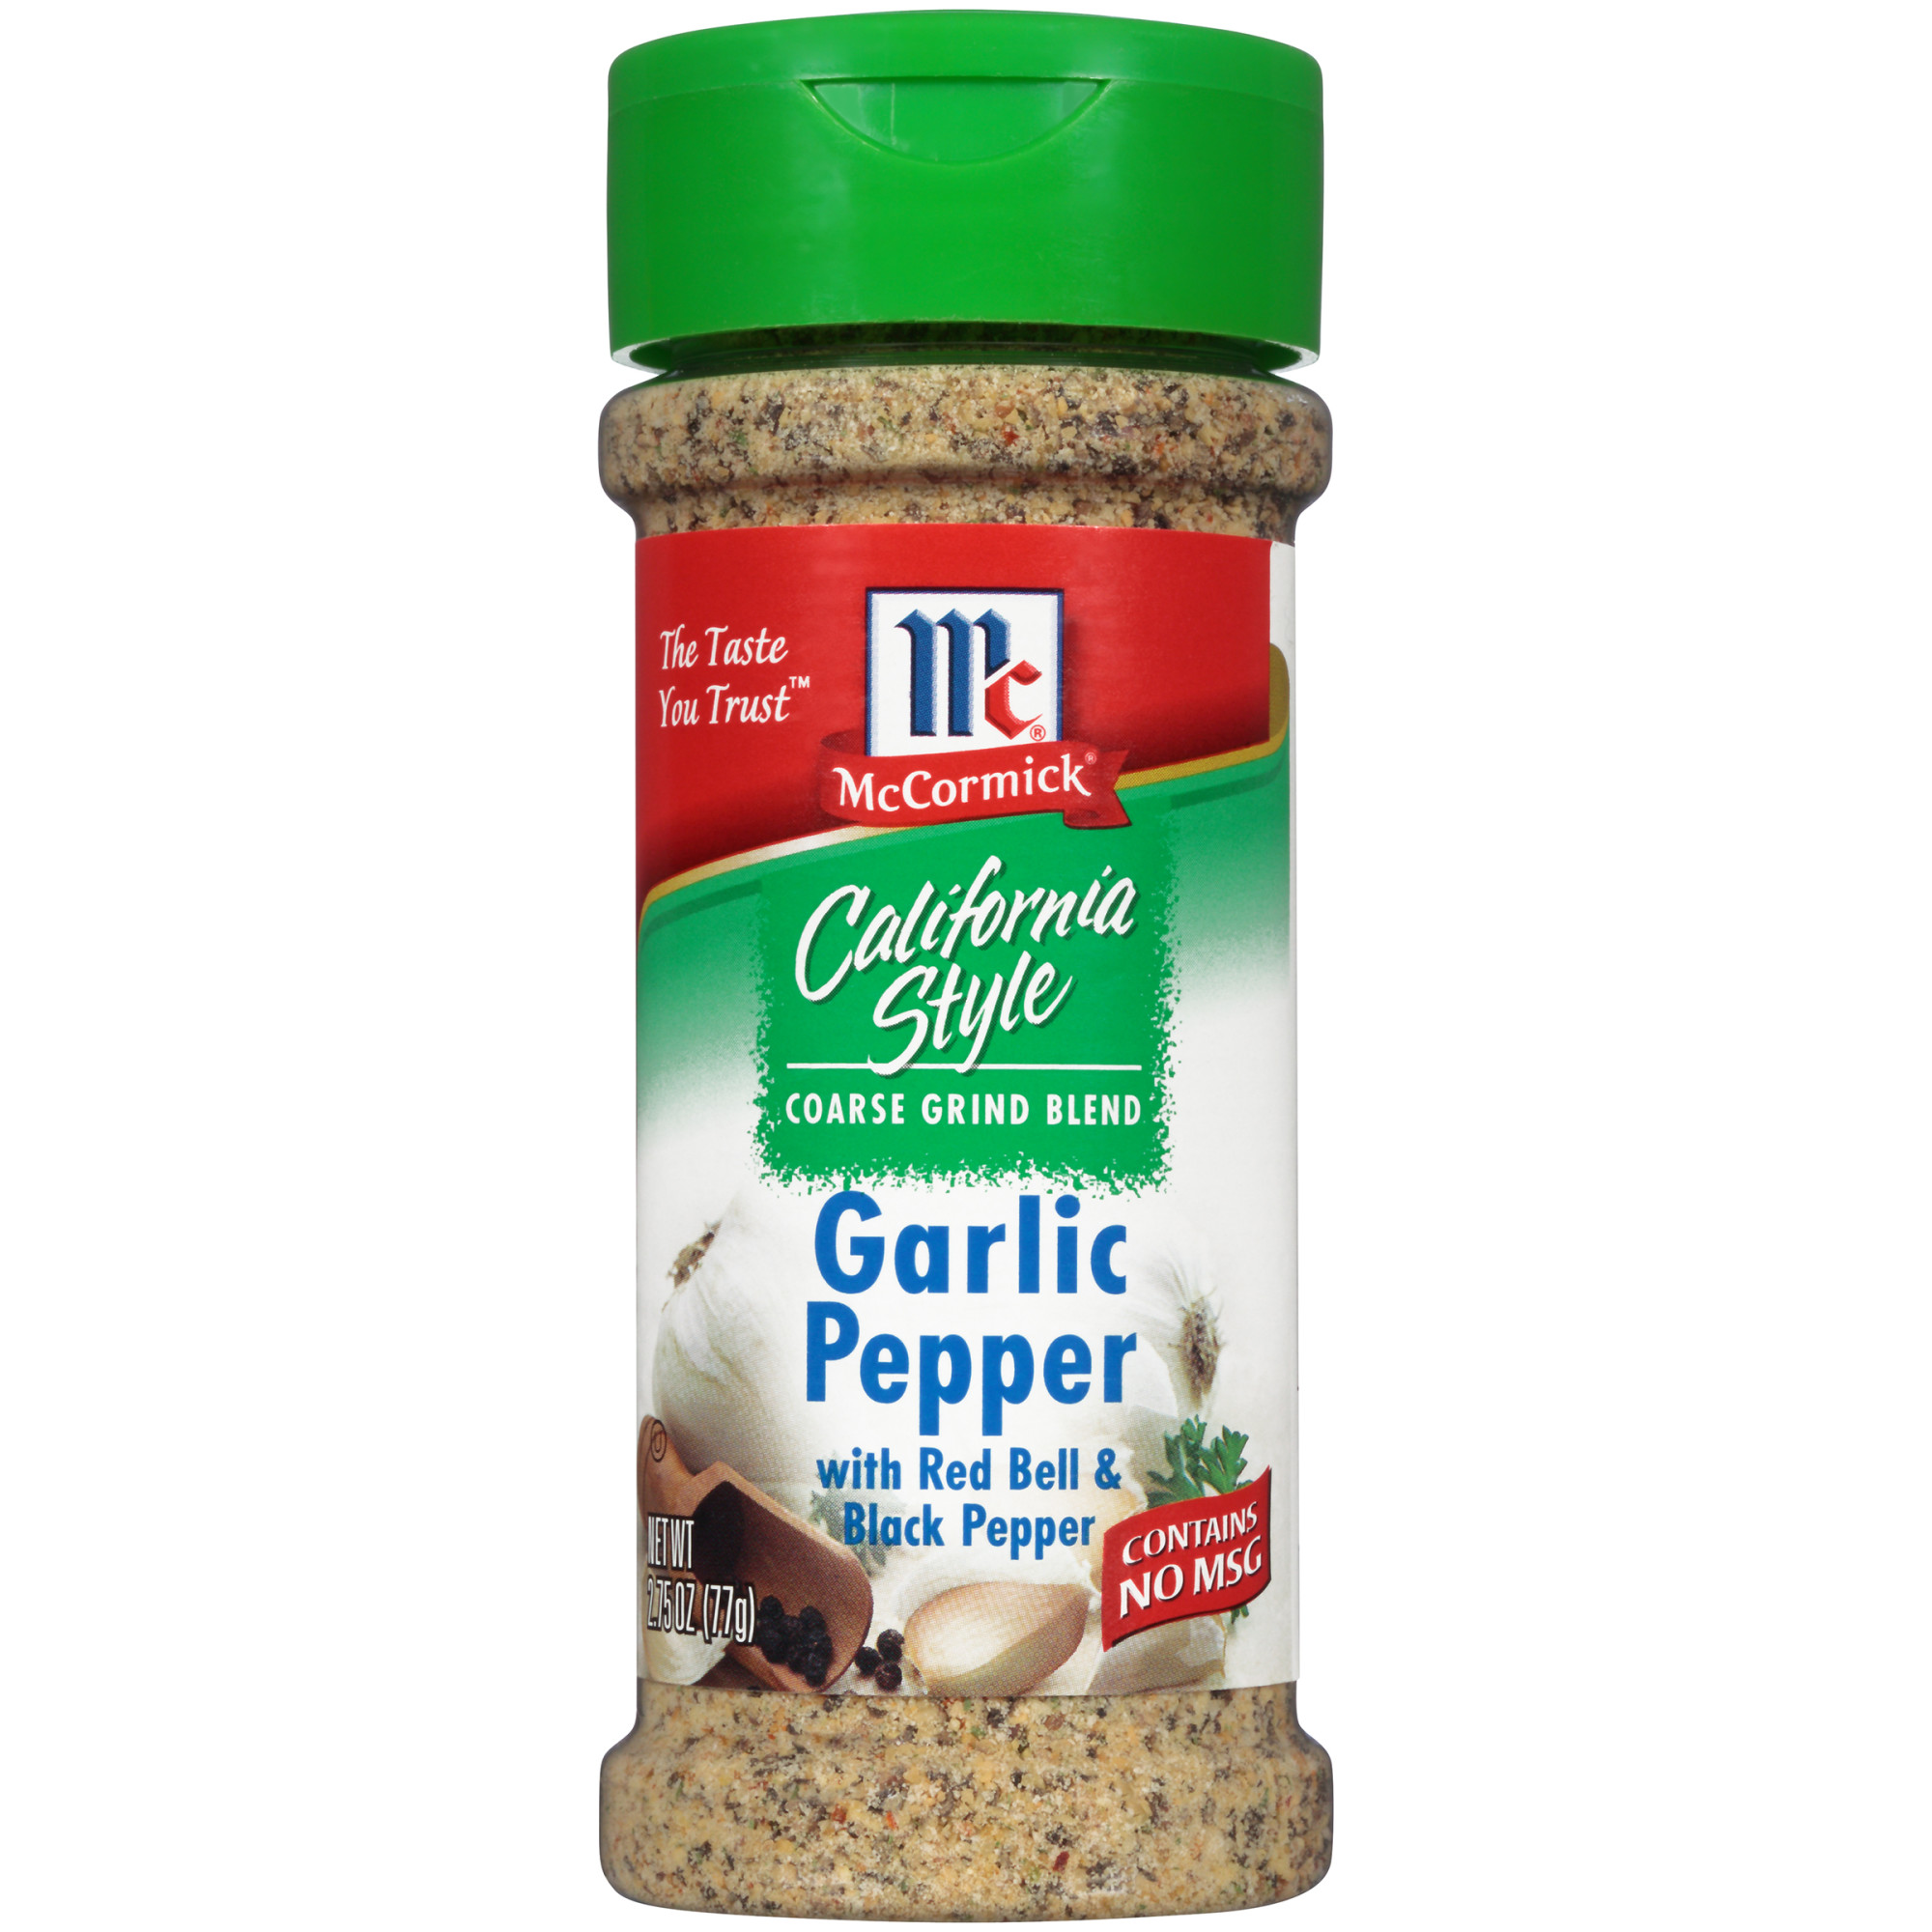 McCormick California Style Garlic Pepper With Red Bell & Black Pepper Coarse Grind Blend, 2.75 oz